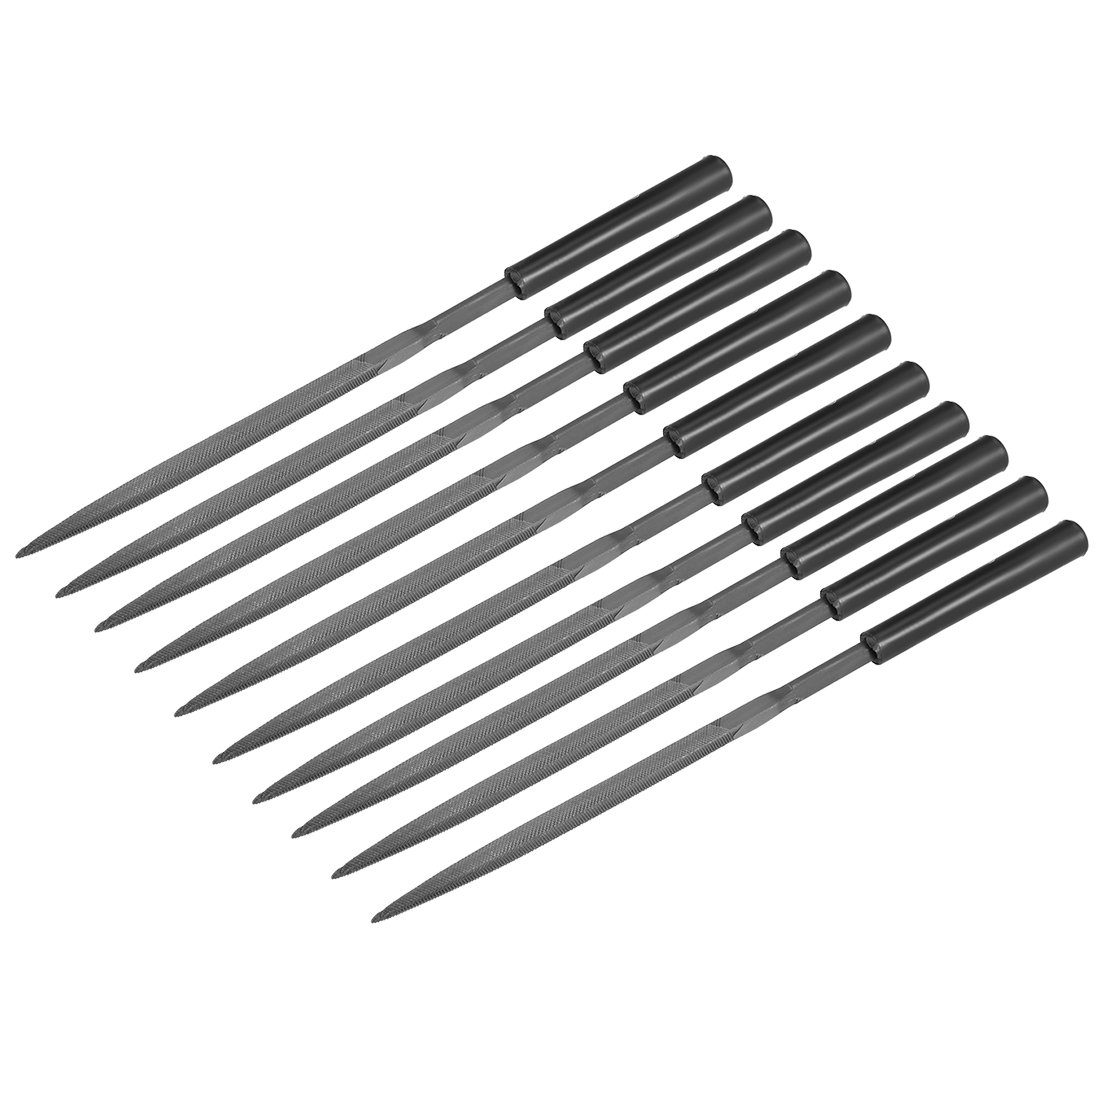 uxcell 10Pcs Second Cut Steel Triangular Needle File with Plastic Handle, 5mm x 180mm